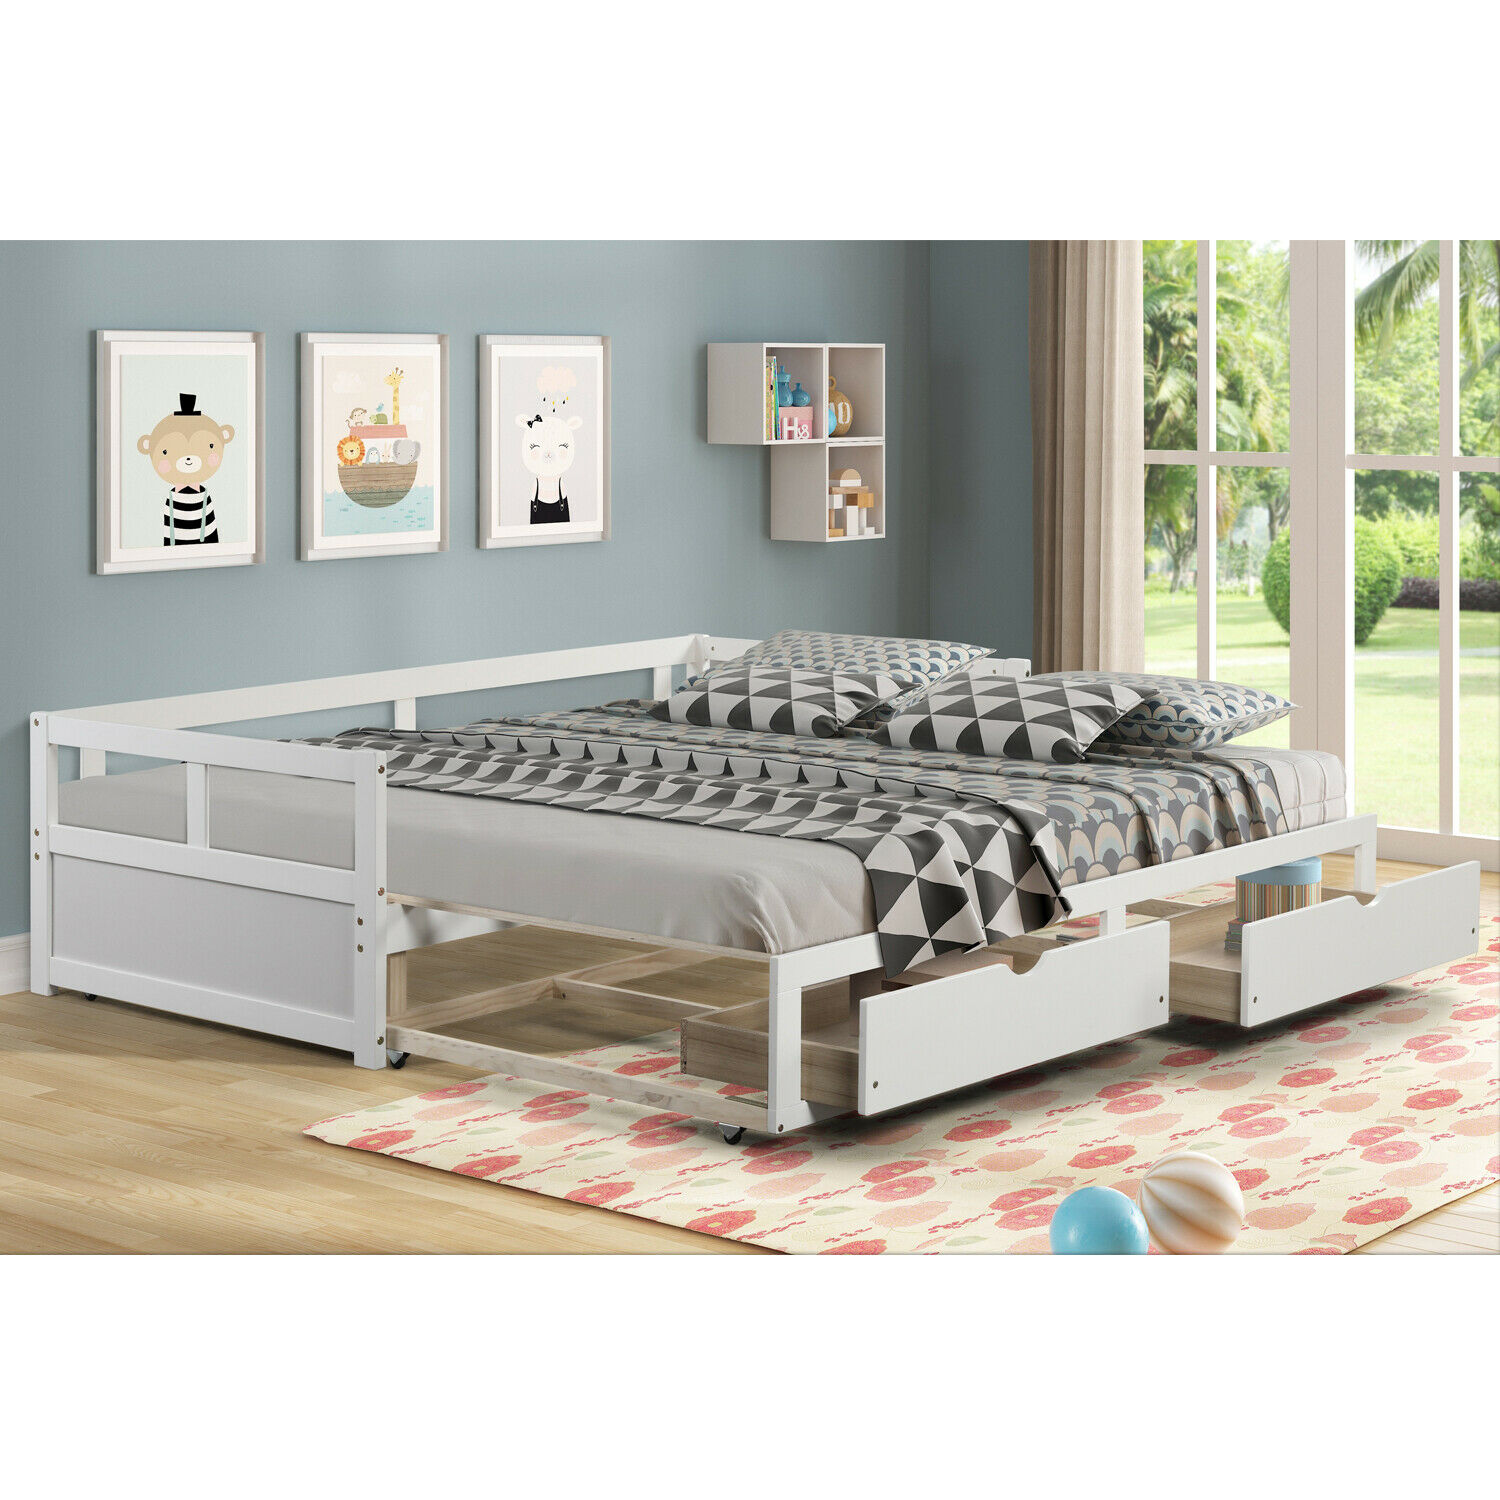 Ikea White Full Bed With Storage And With Mattress For Sale Online Ebay,2 Kids Bedroom Ideas For Small Rooms